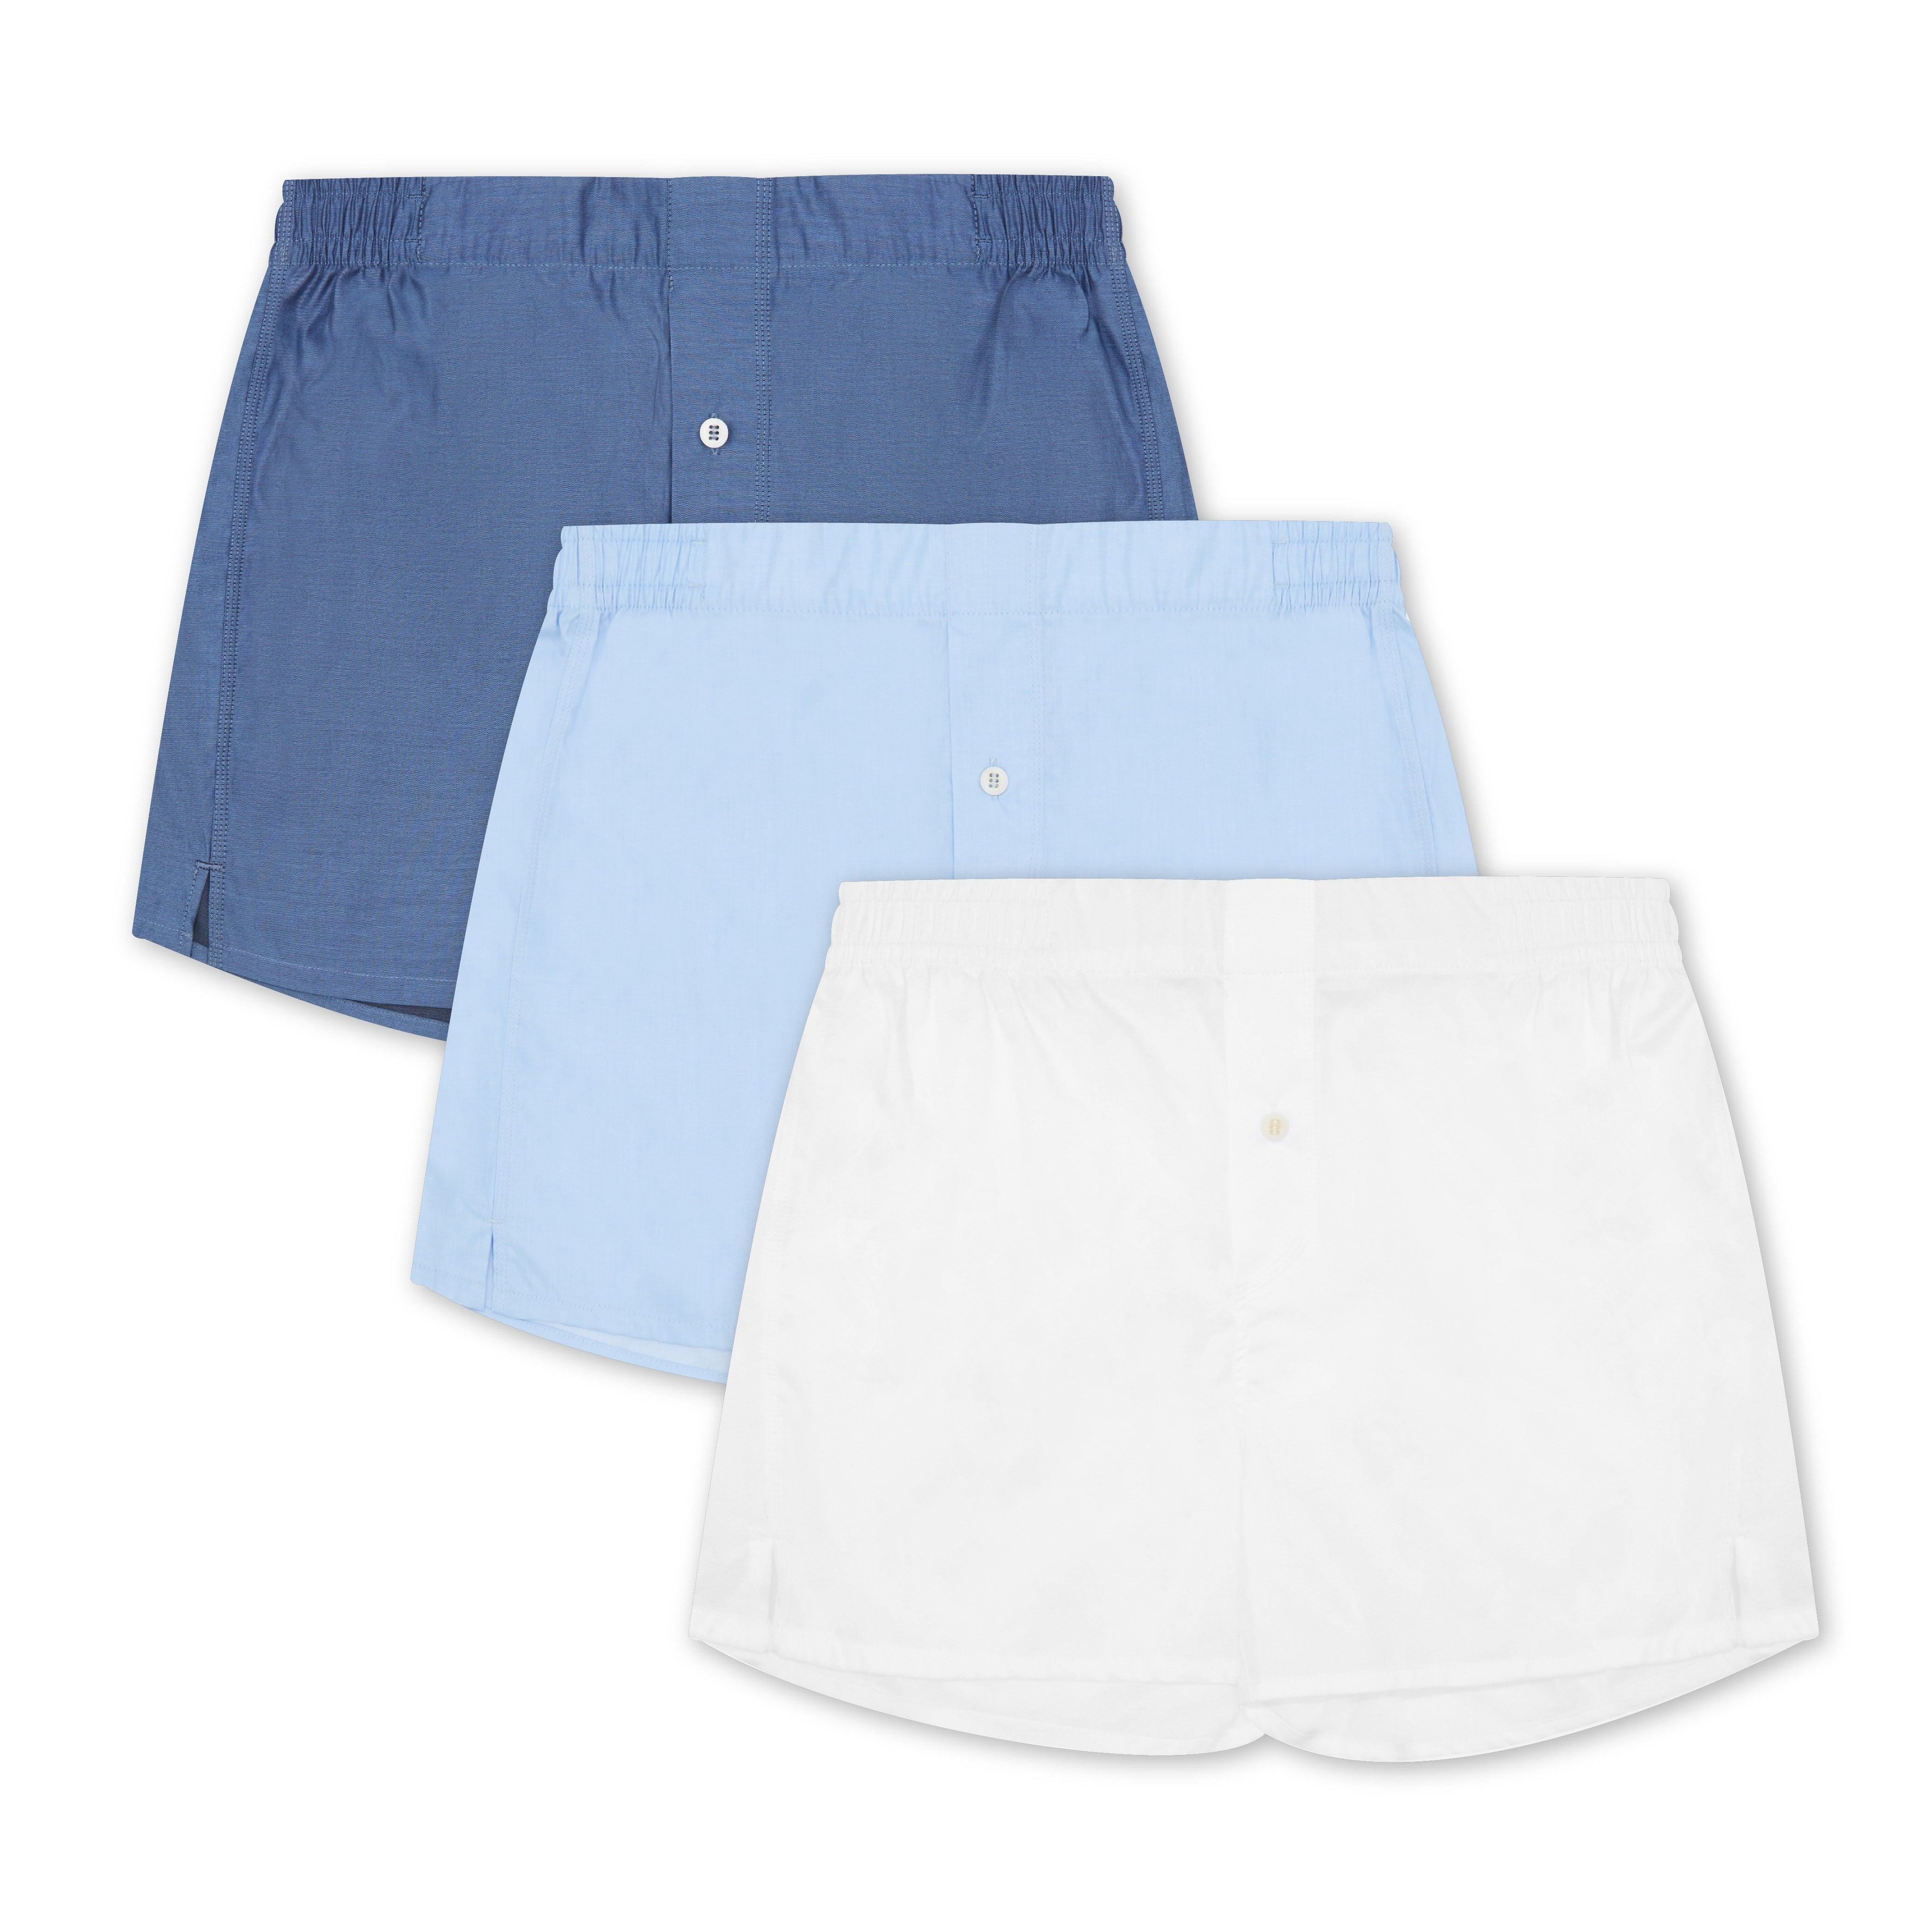 3 Pack Boxer Short Mix - Sky Blue, Classic White, Navy - Hamilton and Hare Ltd